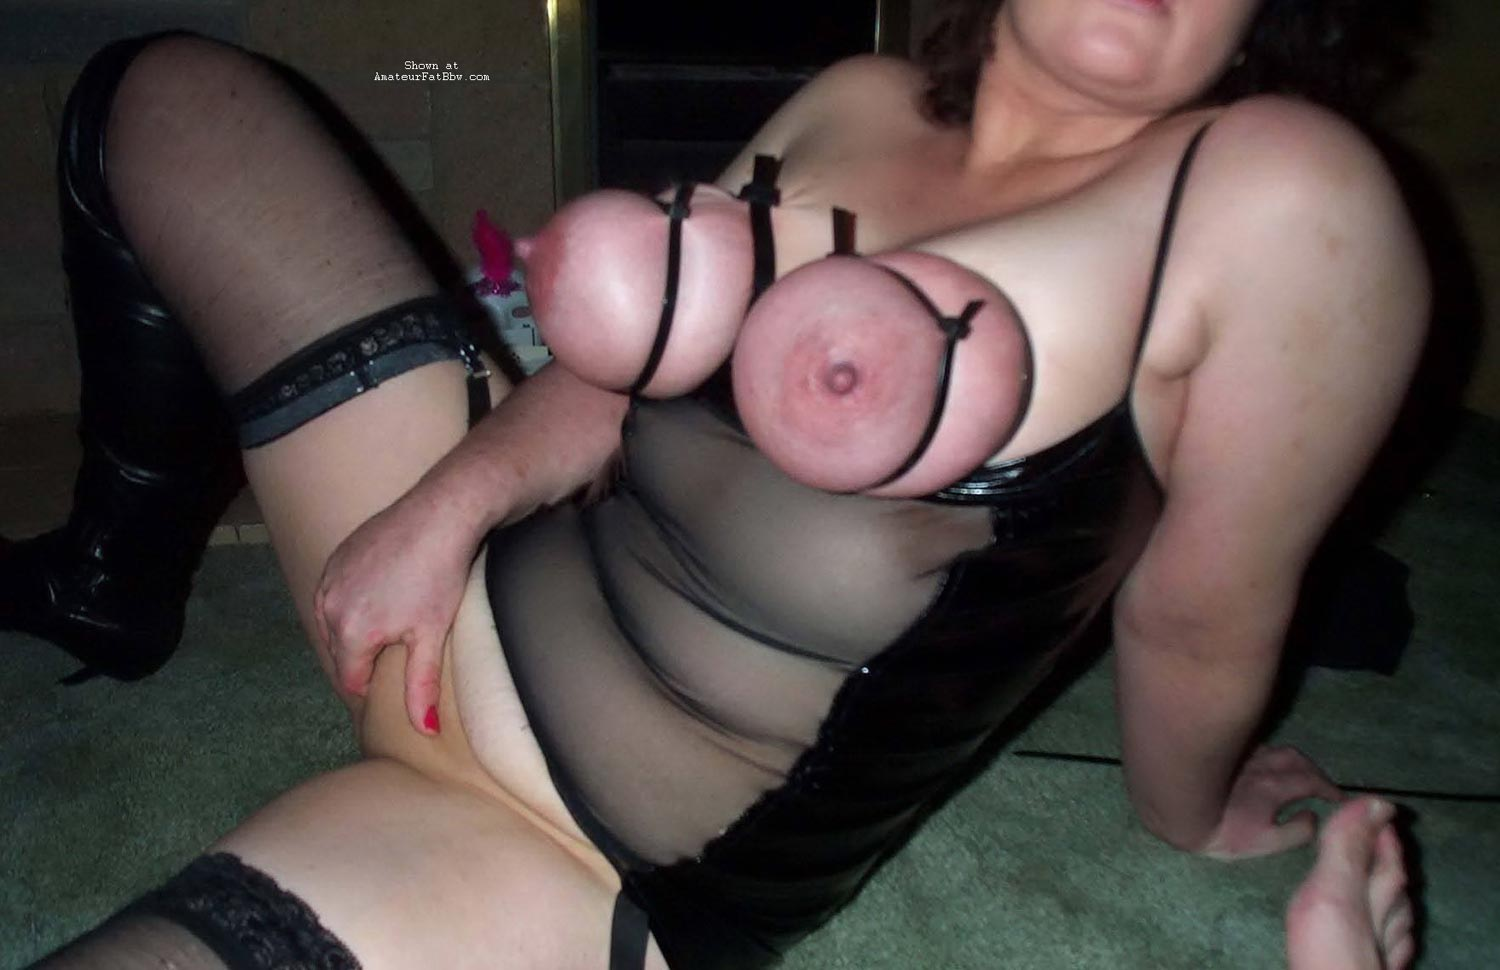 Anal Sex With Bondage bondage movies of bbw . nude pics. comments: 5